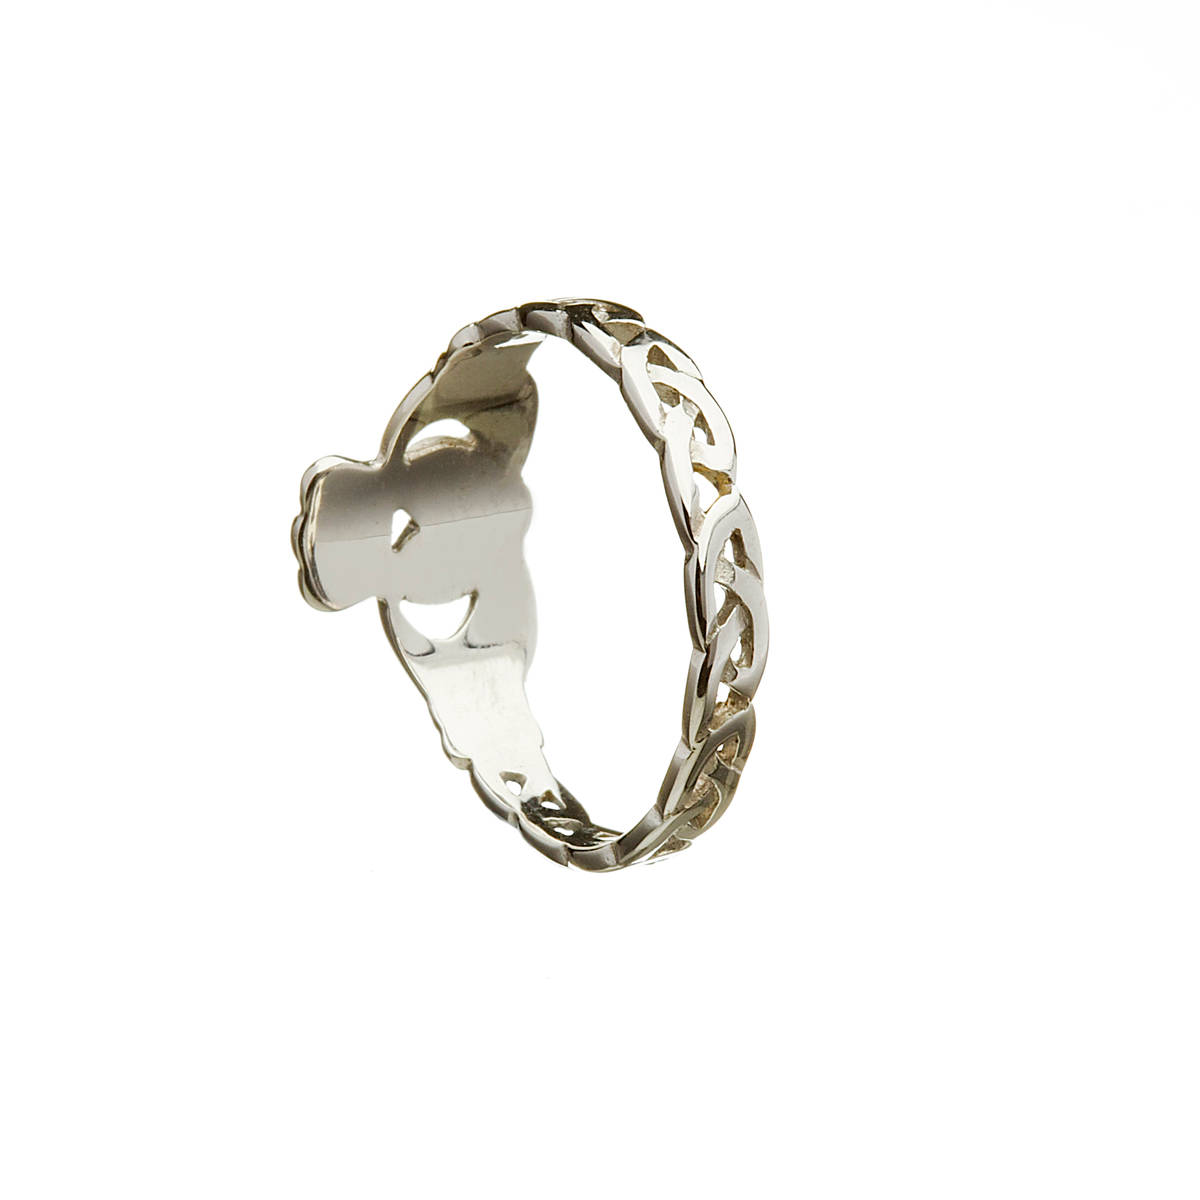 beautiful 10 carat white gold claddagh ring with love knot shank.